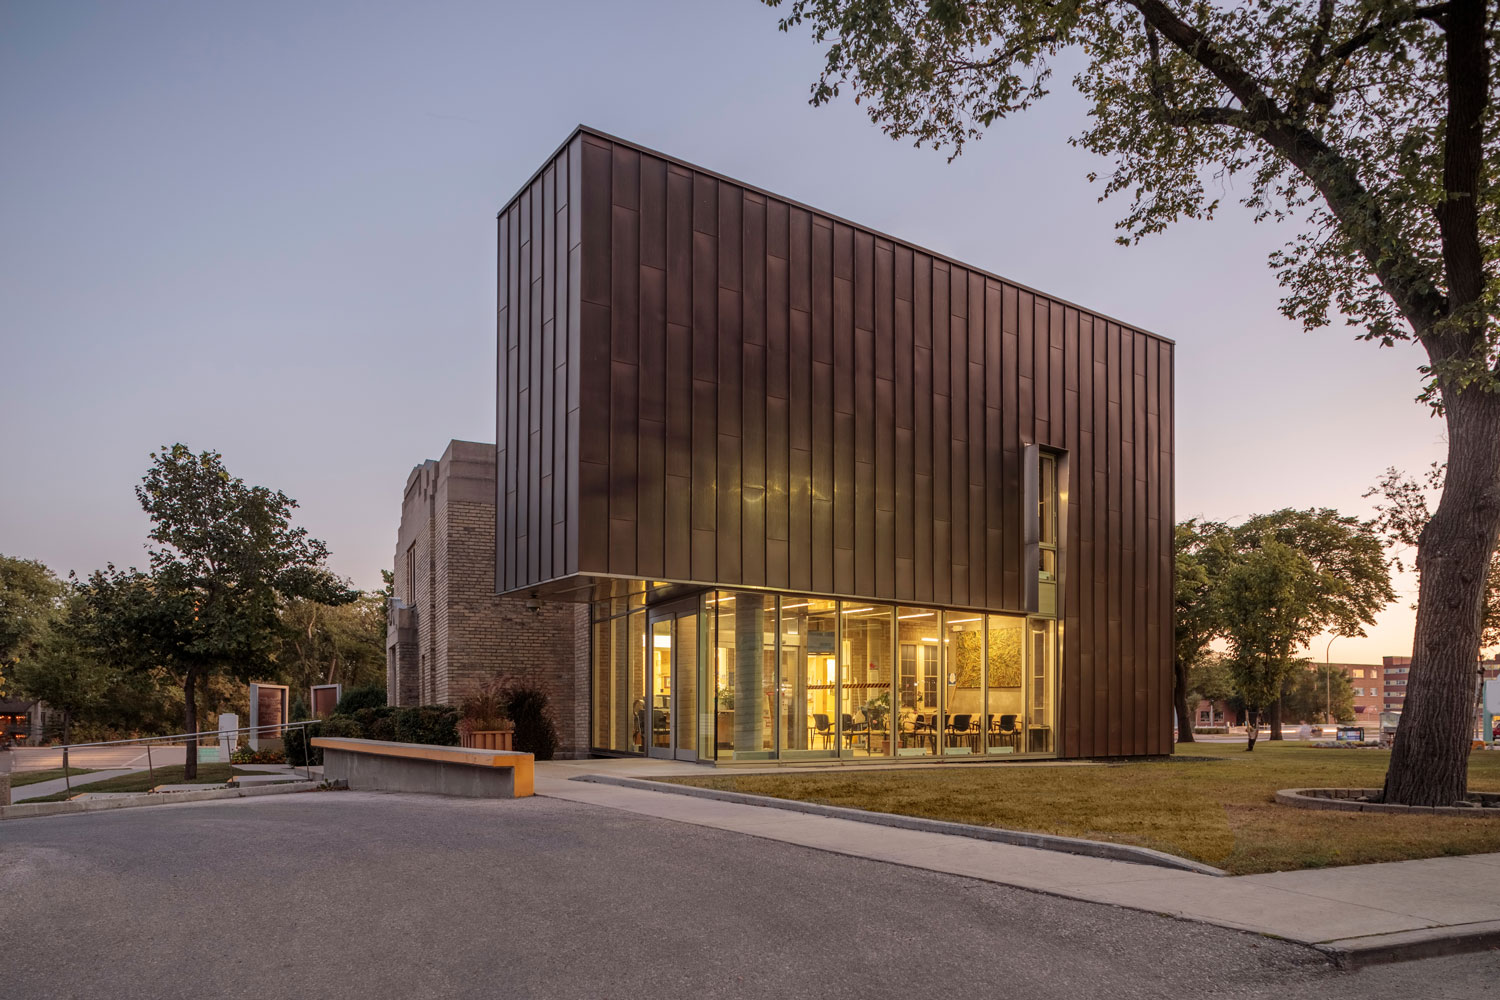 cohlmeyer-architecture-movement-disorder-clinic.jpg